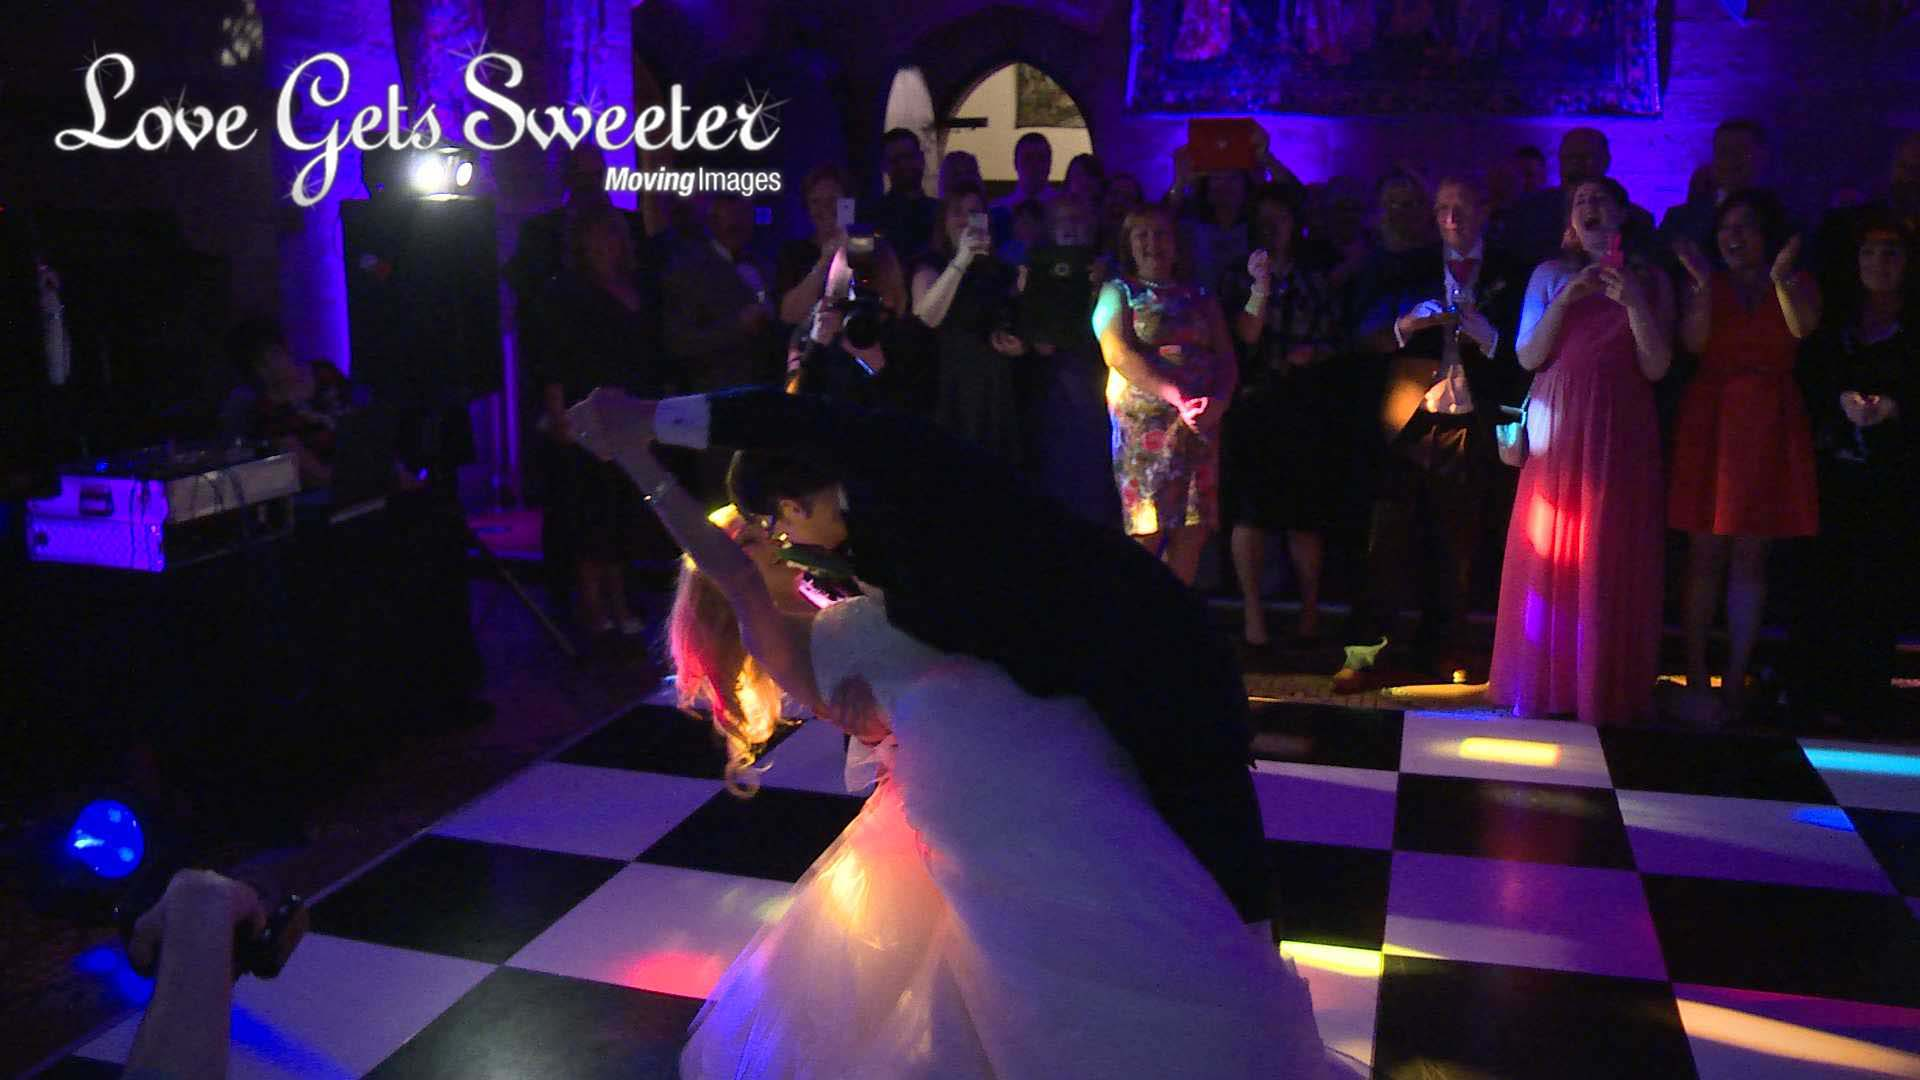 A Fairytale Peckforton Castle Wedding Video